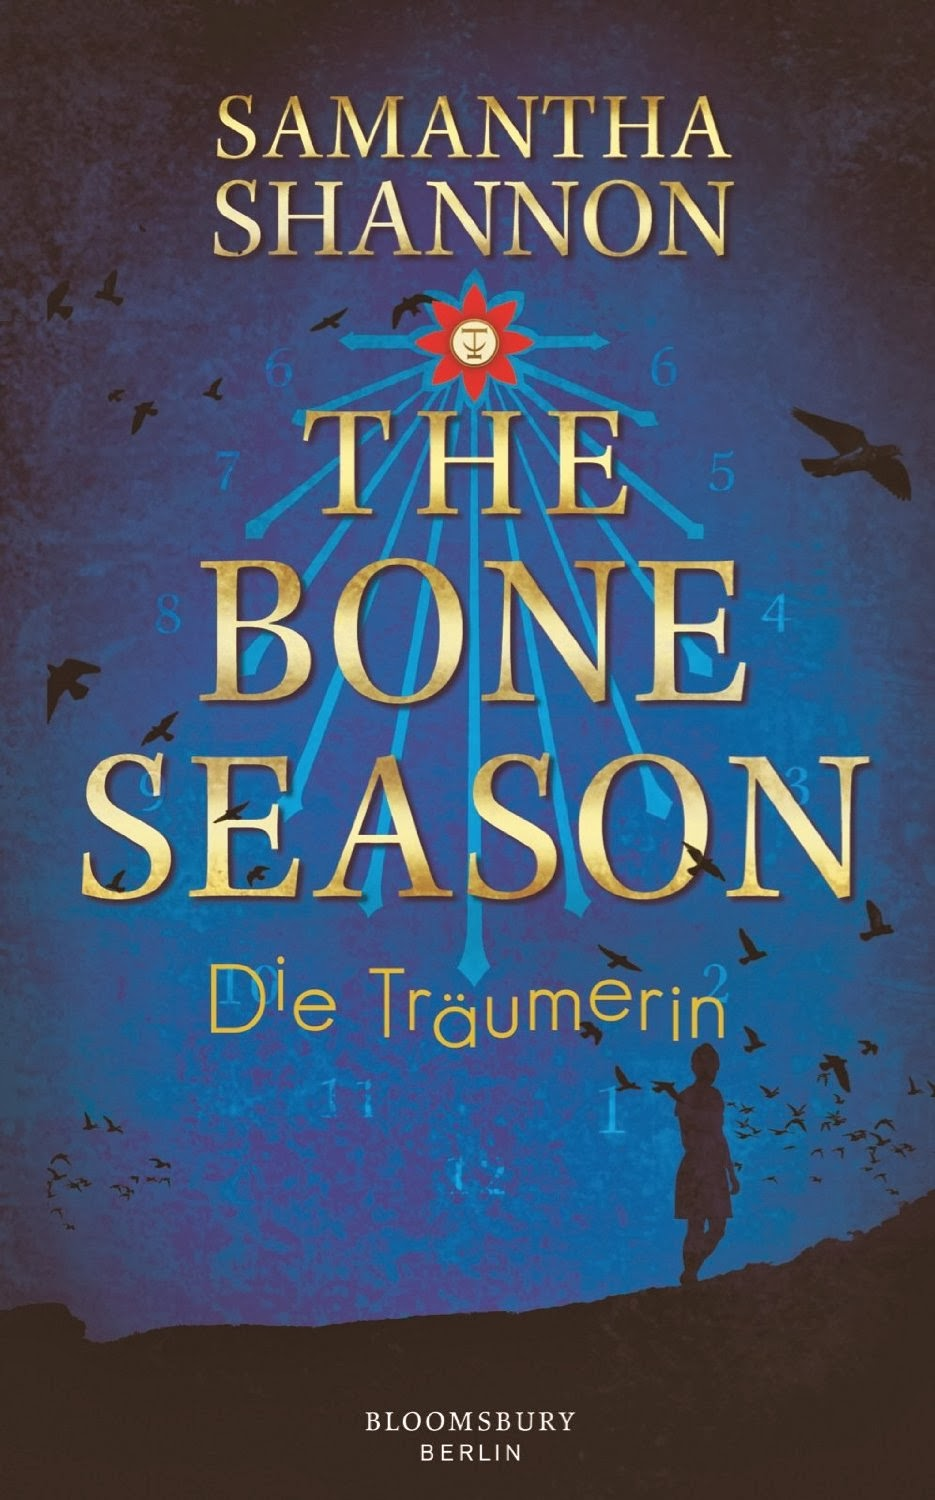 http://www.amazon.de/Bone-Season-Die-Tr%C3%A4umerin-Roman/dp/382701171X/ref=sr_1_1?s=books&ie=UTF8&qid=1389901207&sr=1-1&keywords=the+bone+season